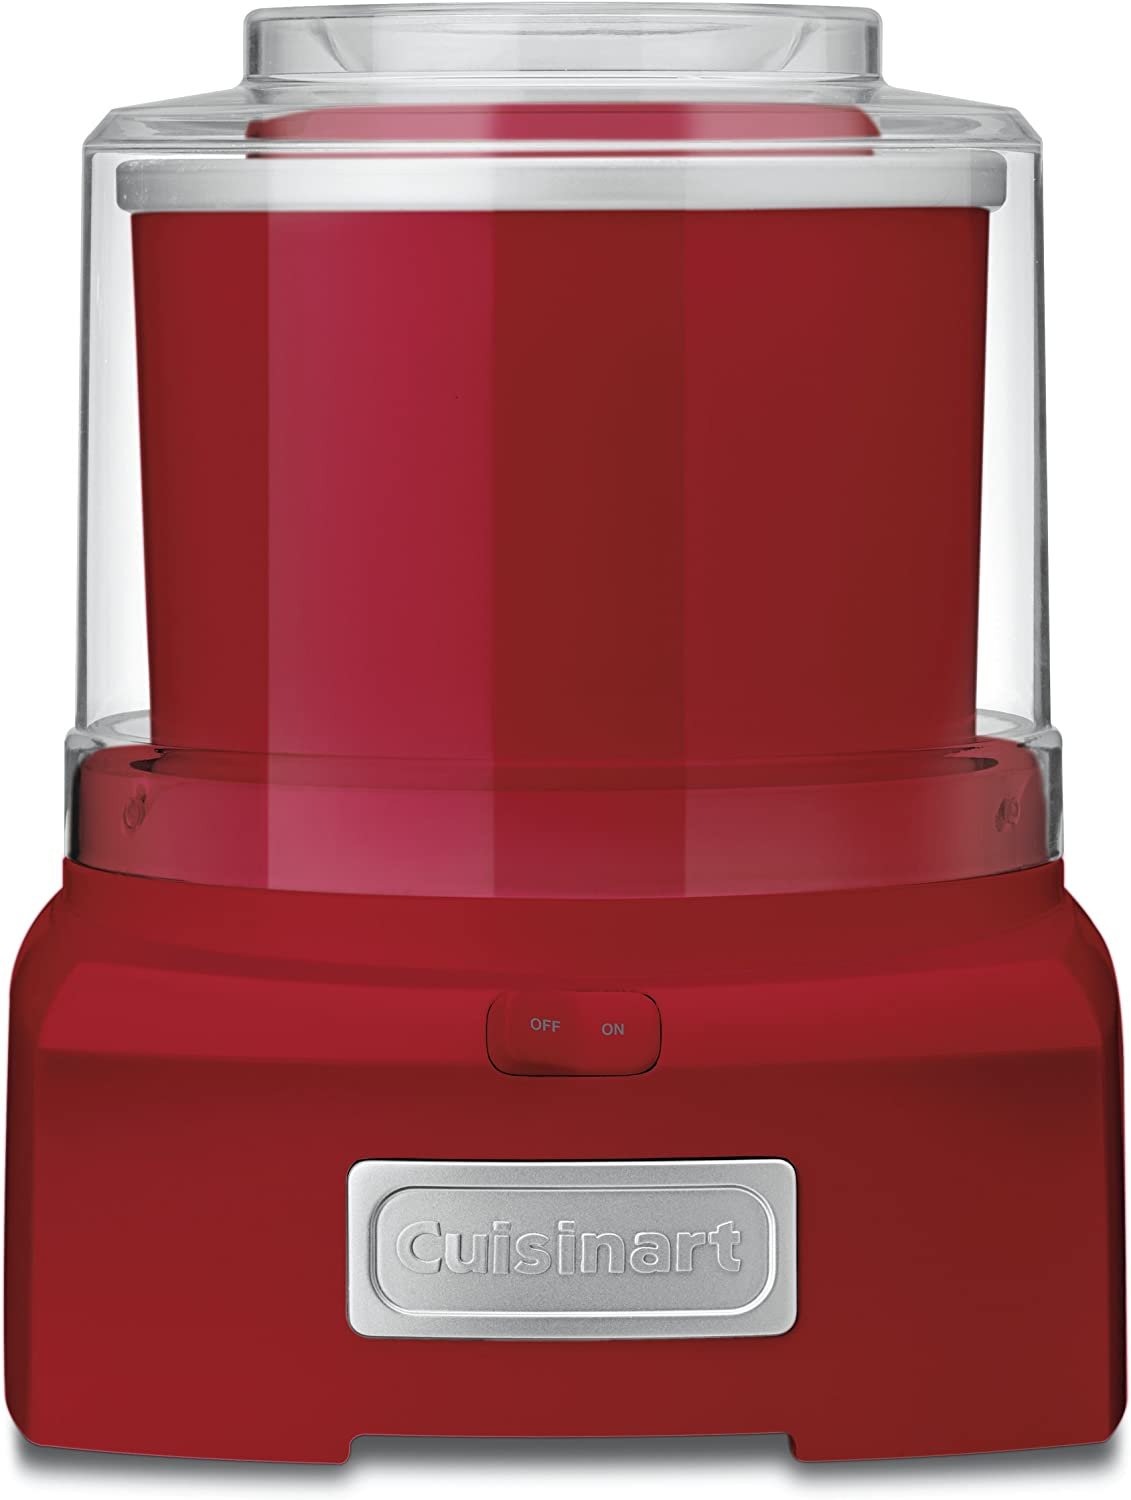 Cuisinart ICE-21RP1 ICE21R Frozen Yogurt Automatic Ice Cream and Sorbet Maker,120 V, Thermoplastic, 1-1/2 qt, Red